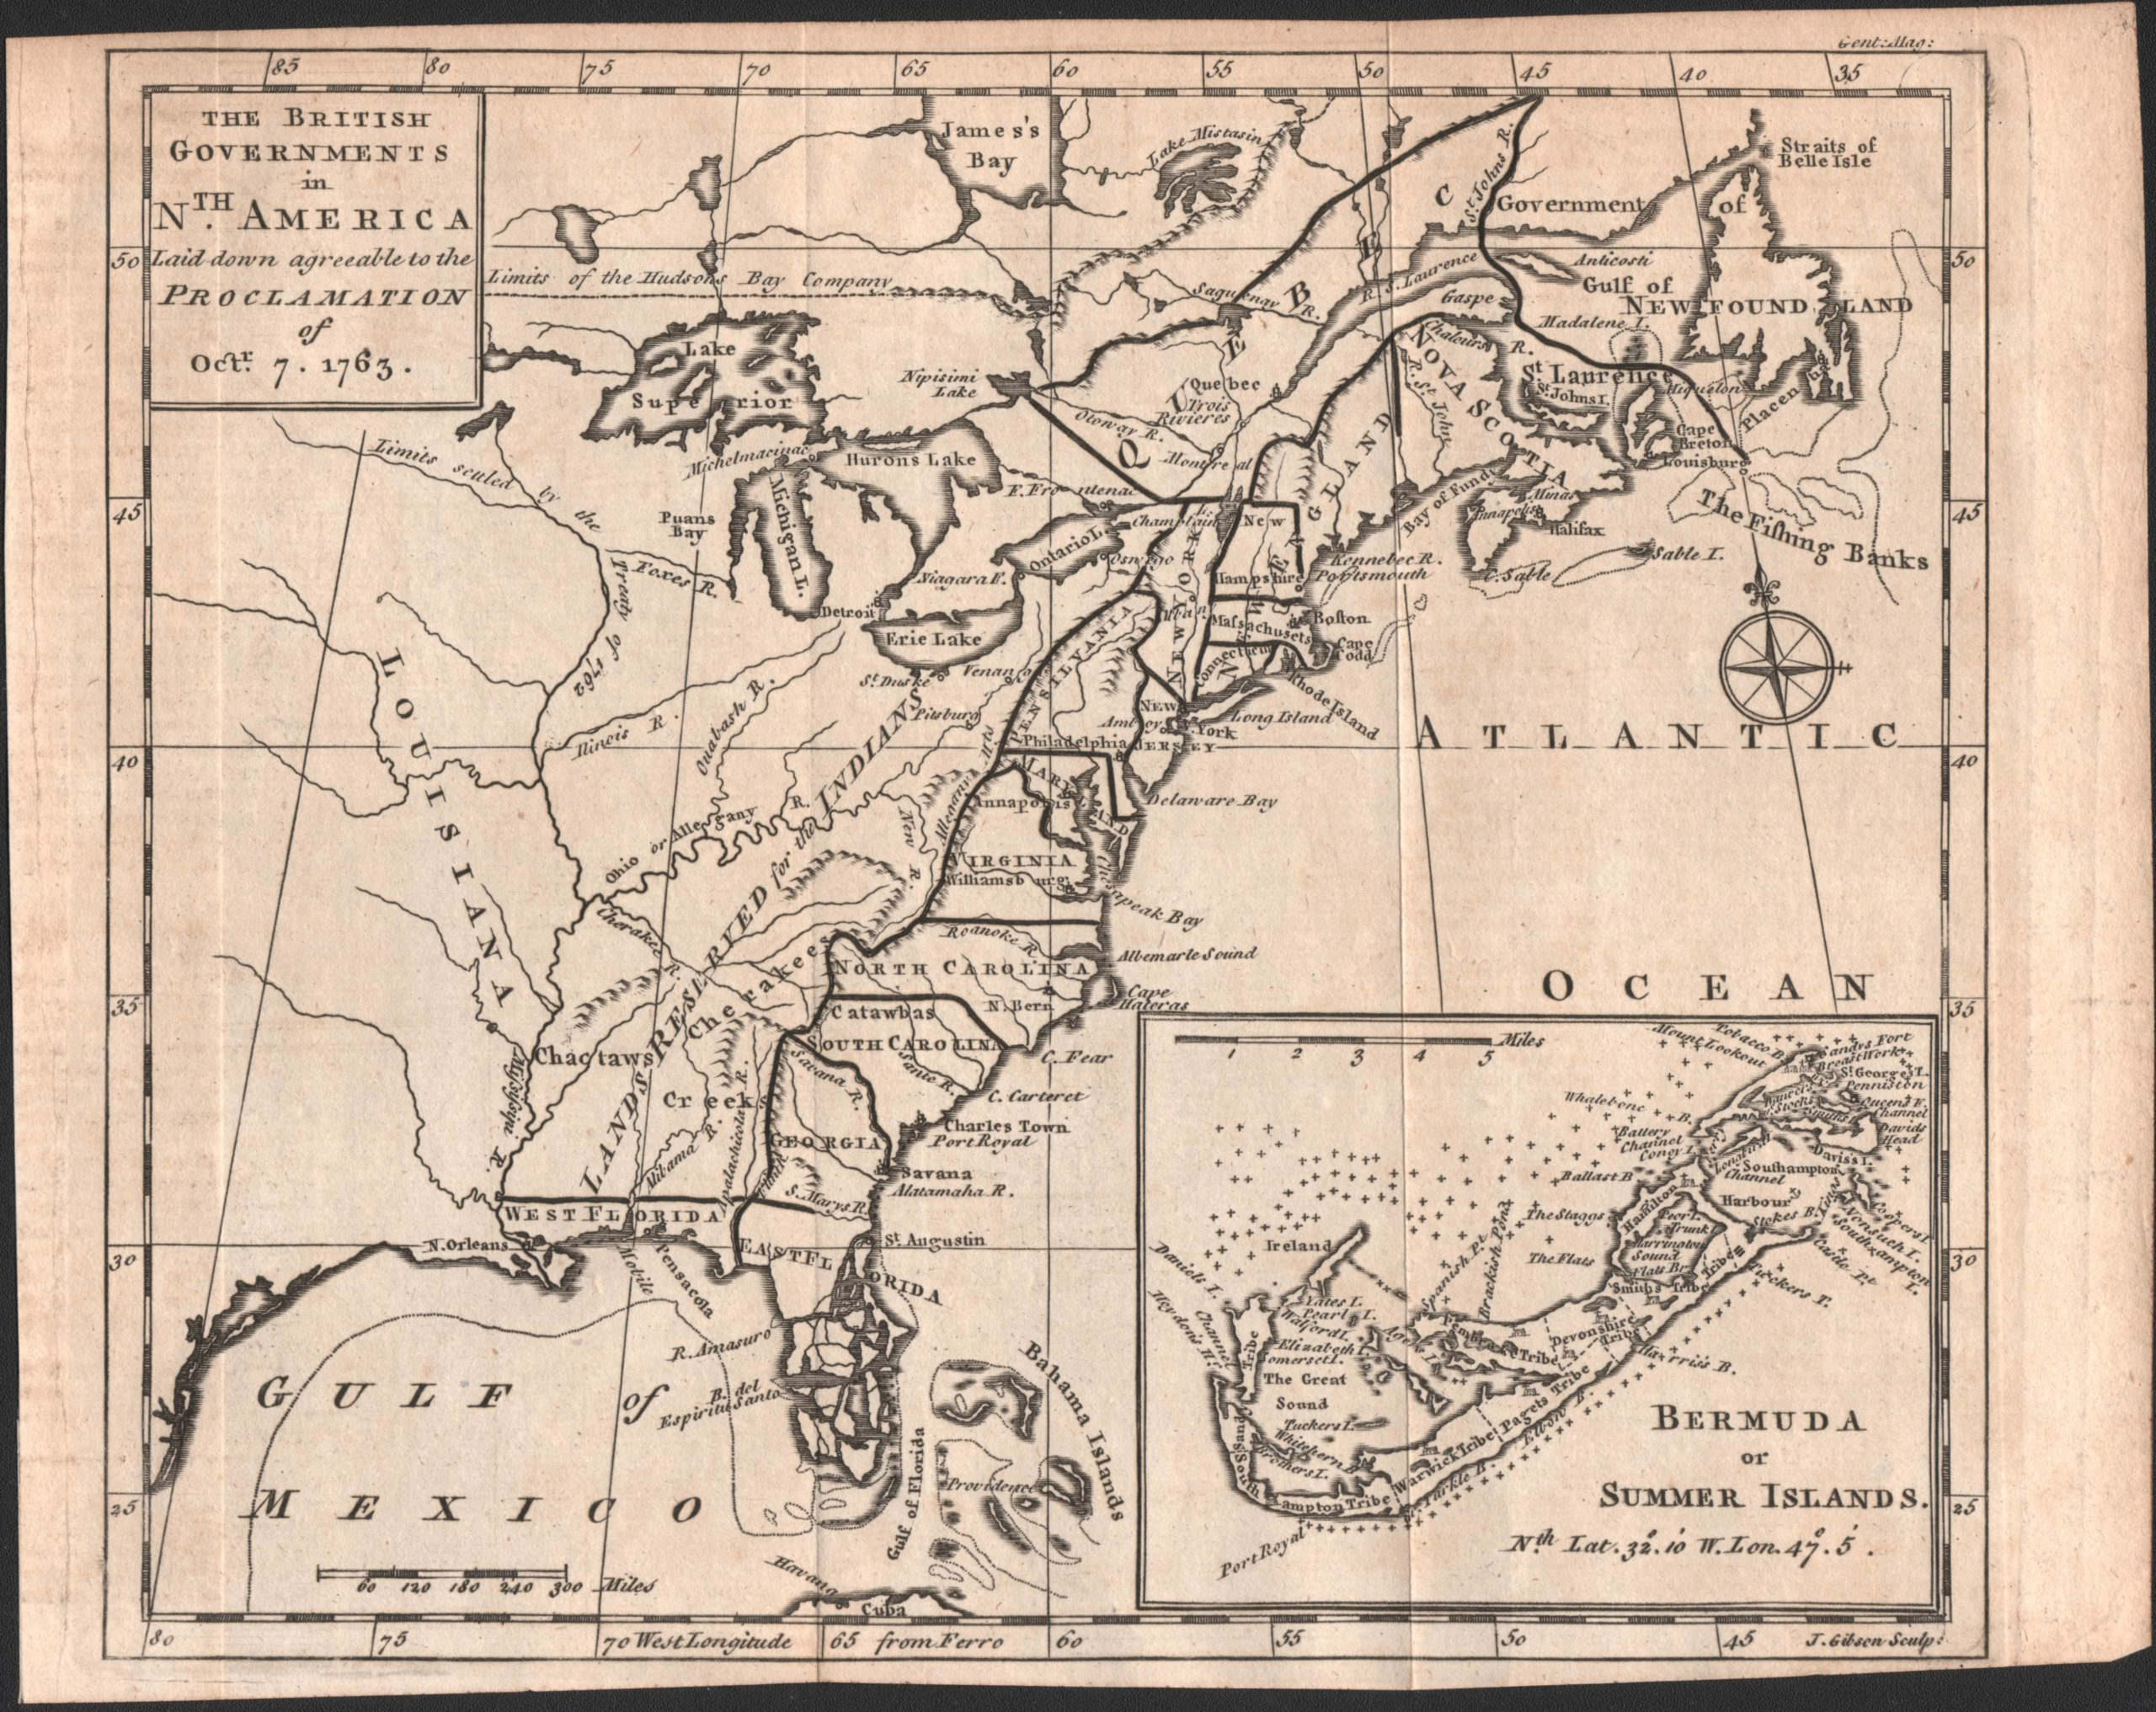 Rare Map Of The British Governments In Nth America Laid